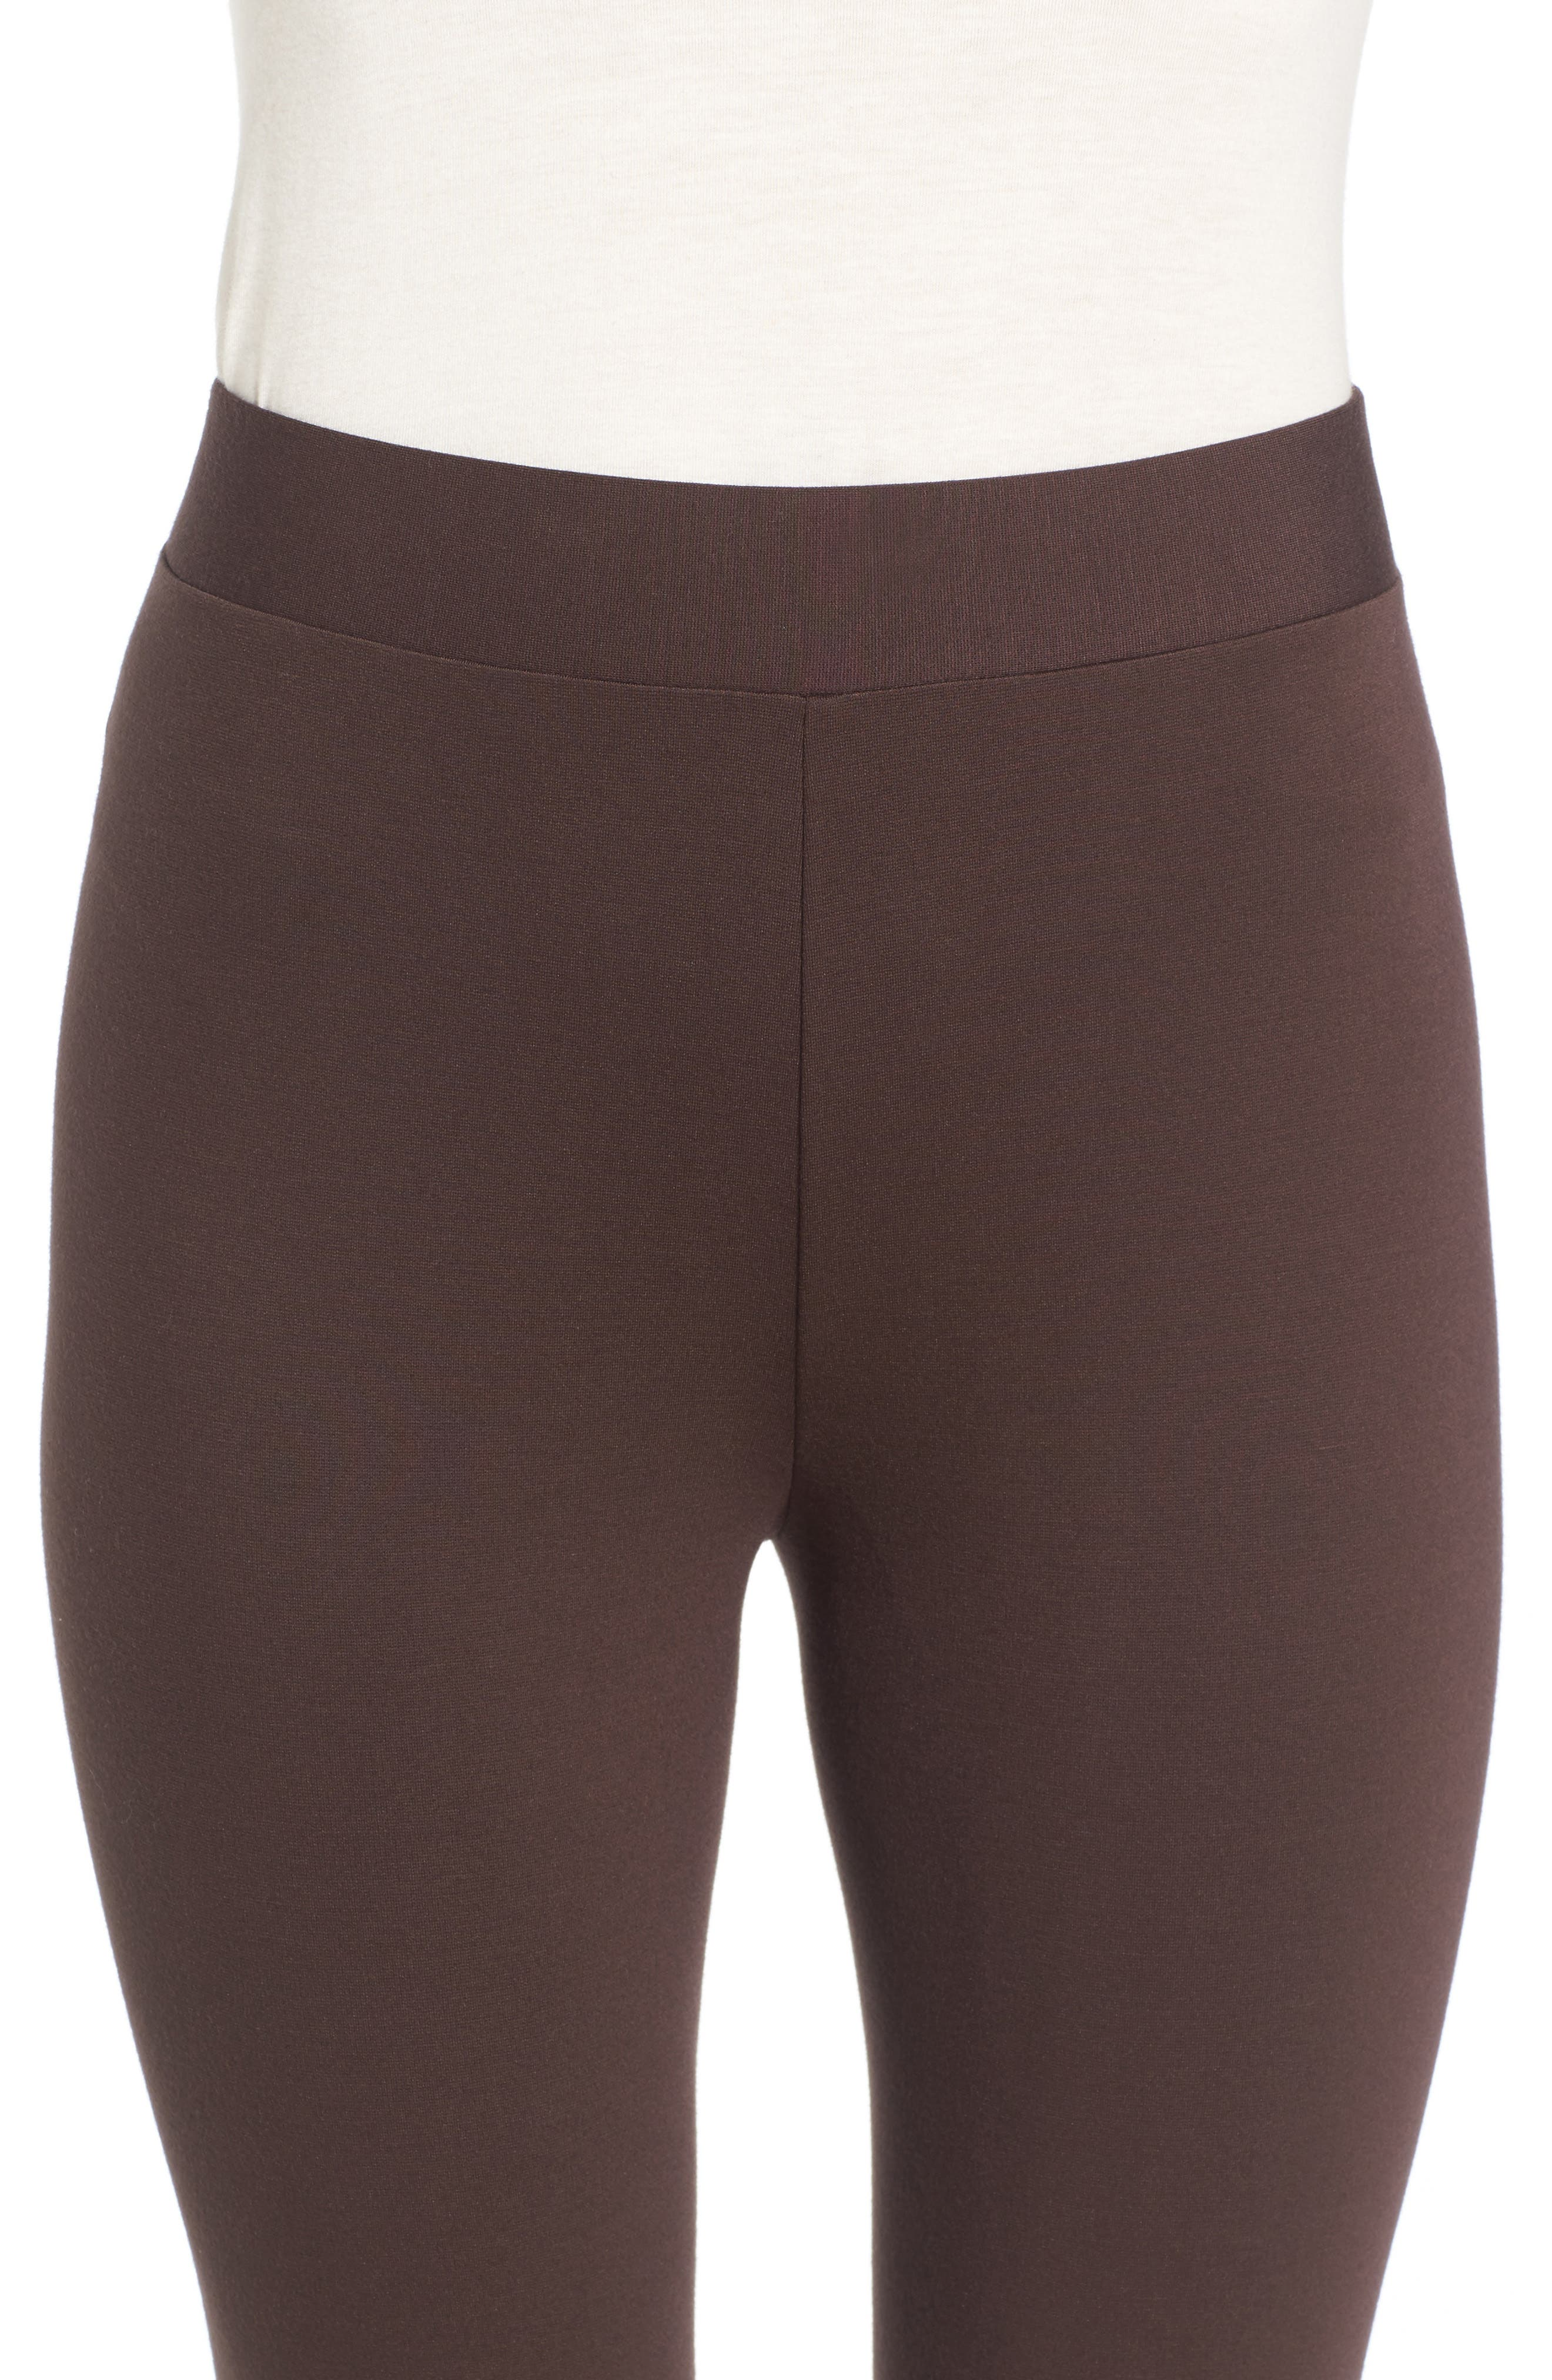 Two by Vince Camuto Seamed Back Leggings,                             Alternate thumbnail 4, color,                             ESPRESSO